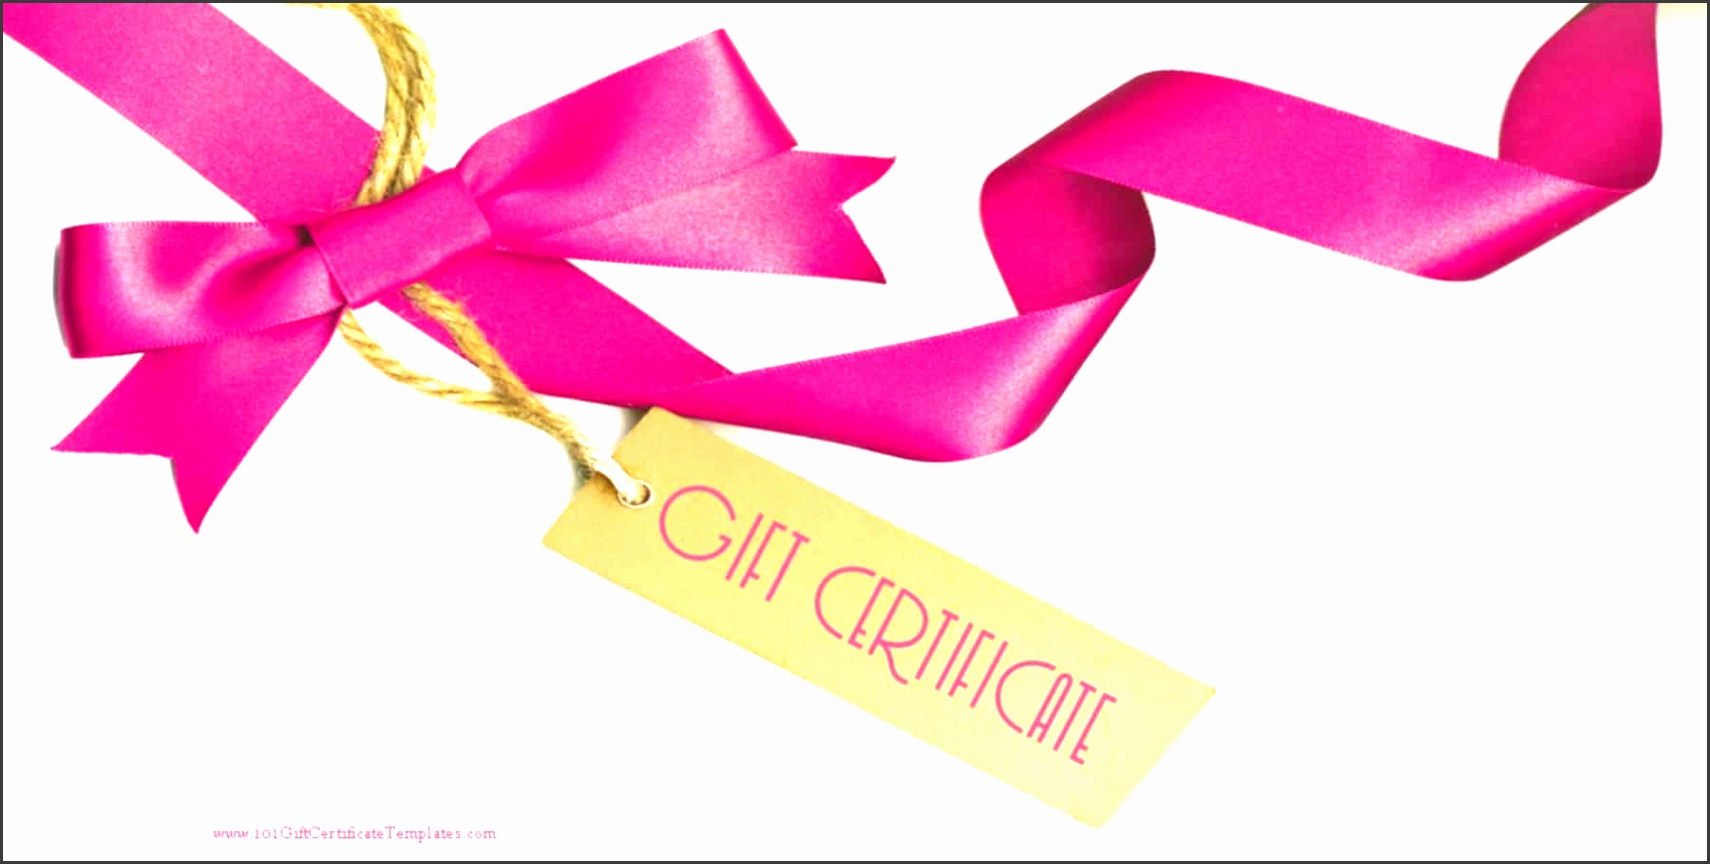 t certificate with a white background and a pink ribbon with a light brown paper tag